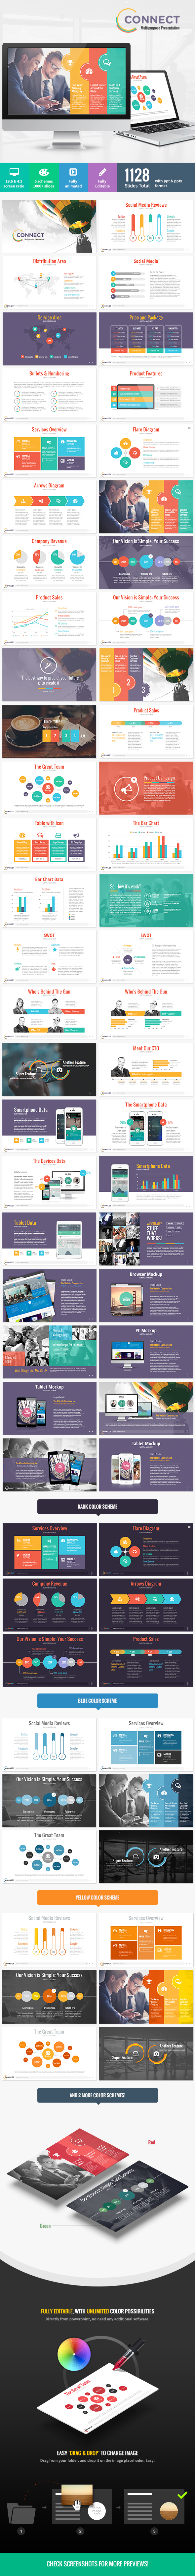 GraphicRiver Connect Modern Powerpoint Template 8957333